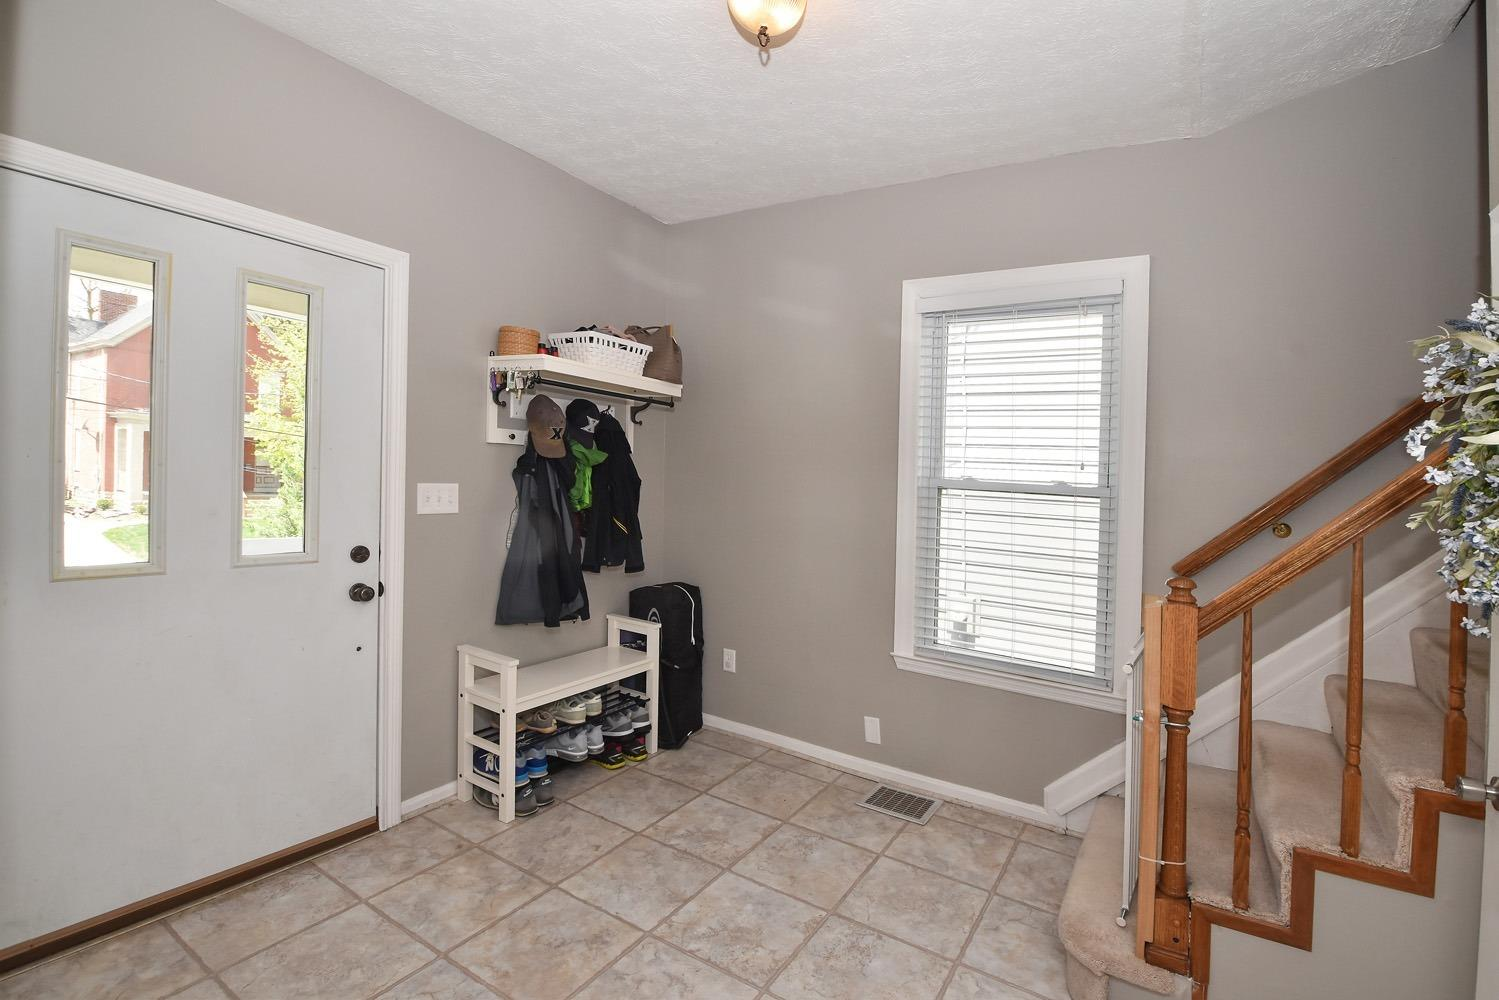 Photo 3 for 4226 Ivanhoe Ave Norwood, OH 45212